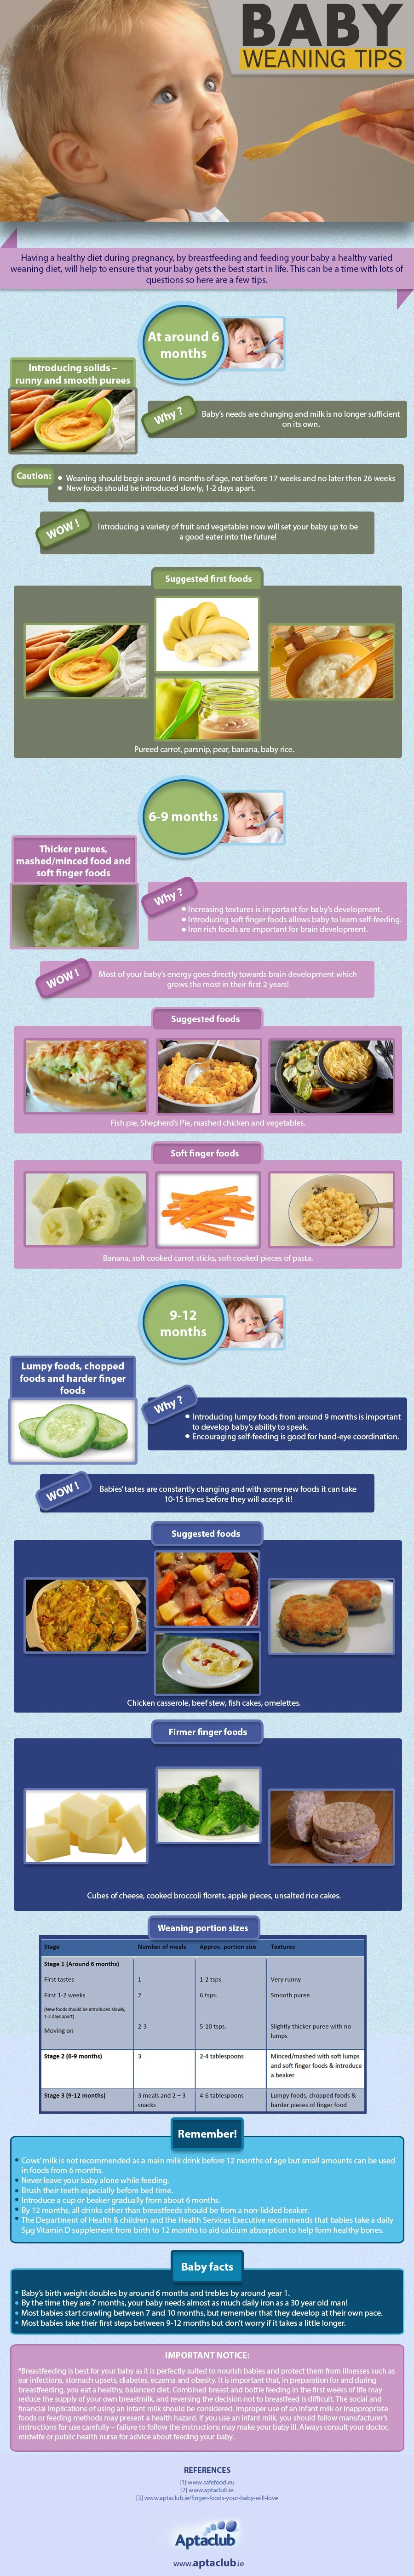 Aptaclub_BABY_FEEDING_TIPS_INFOGRAPHIC